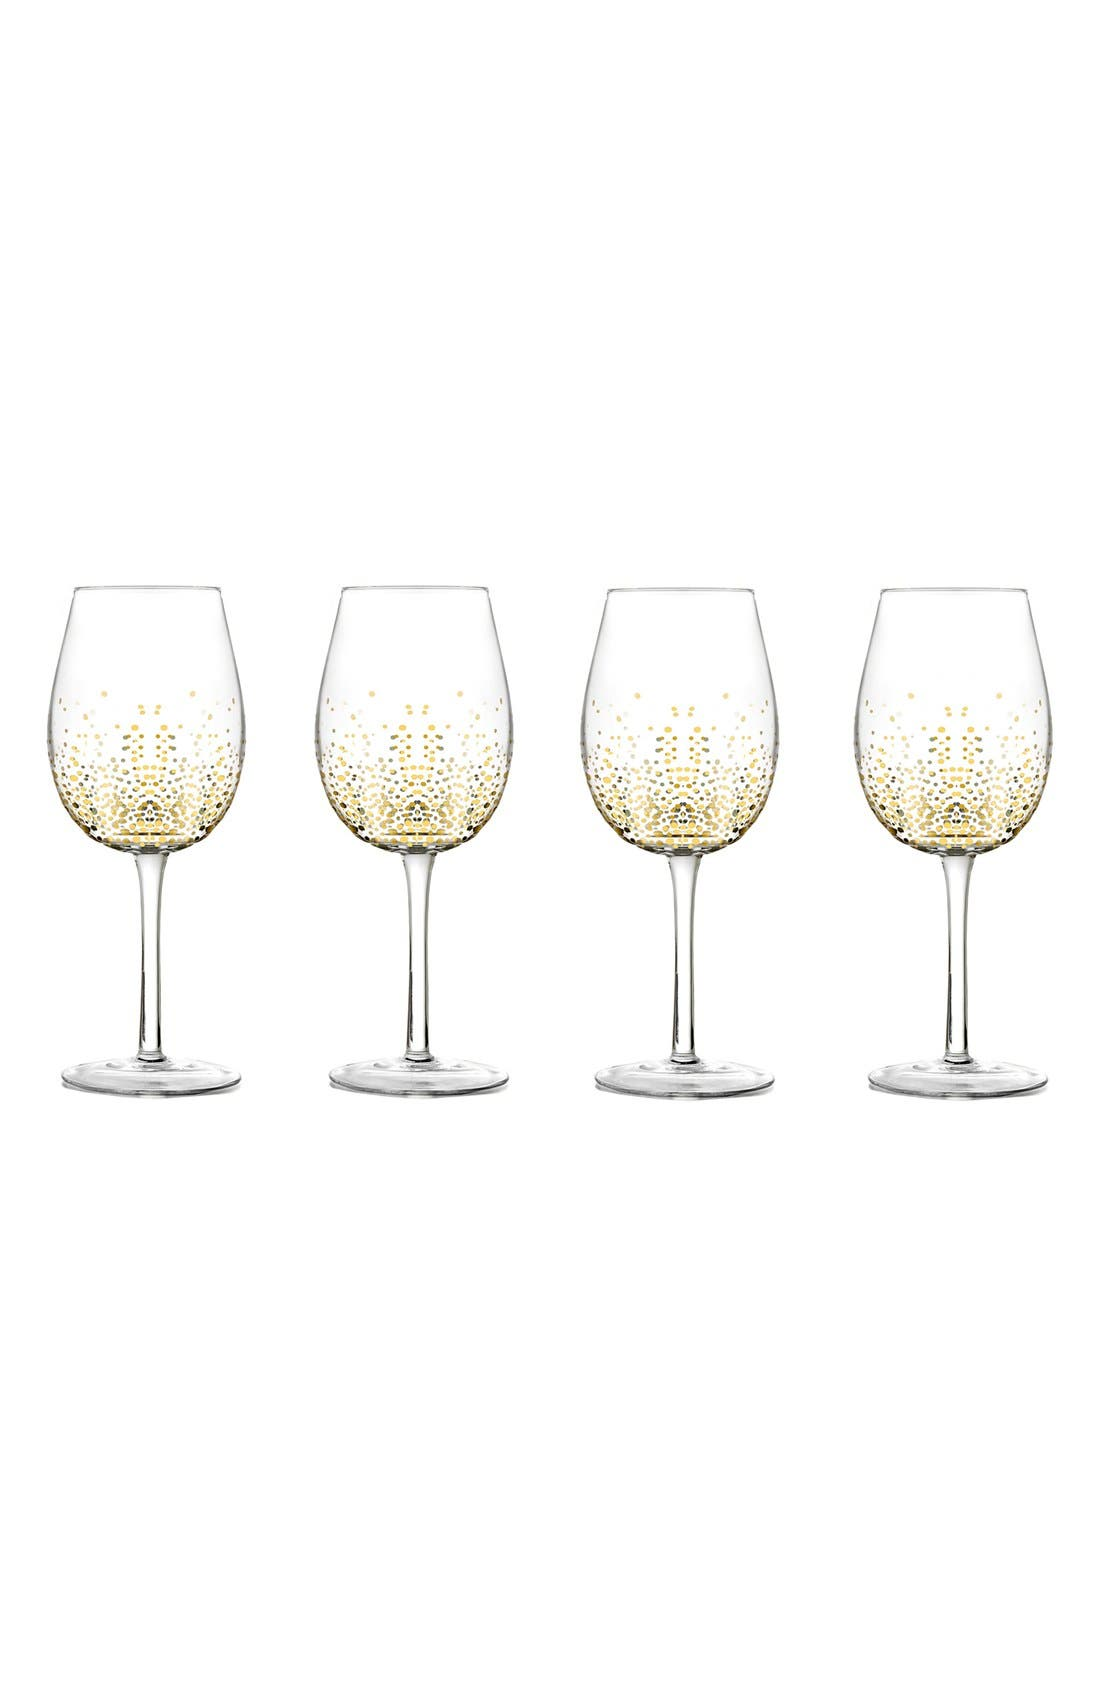 American Atelier Luster Set of 4 Wine Glasses